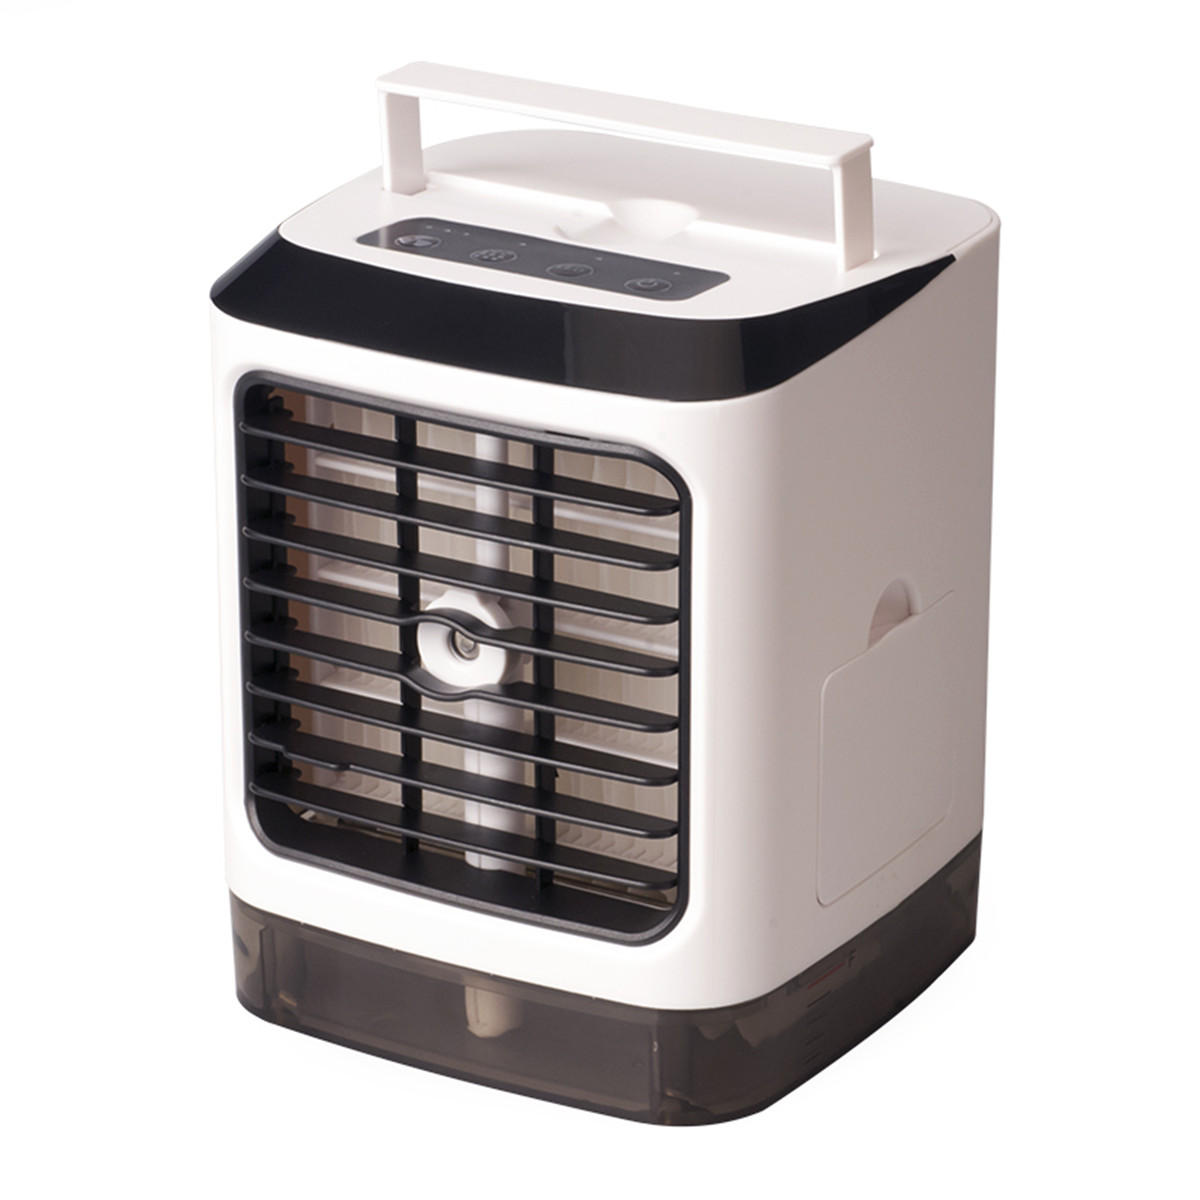 3 in 1 480ml White Mini Portable USB Air Cooler Humidifier Purifier Cleaner 4 Gears LED Light Personal Space Air Cooling